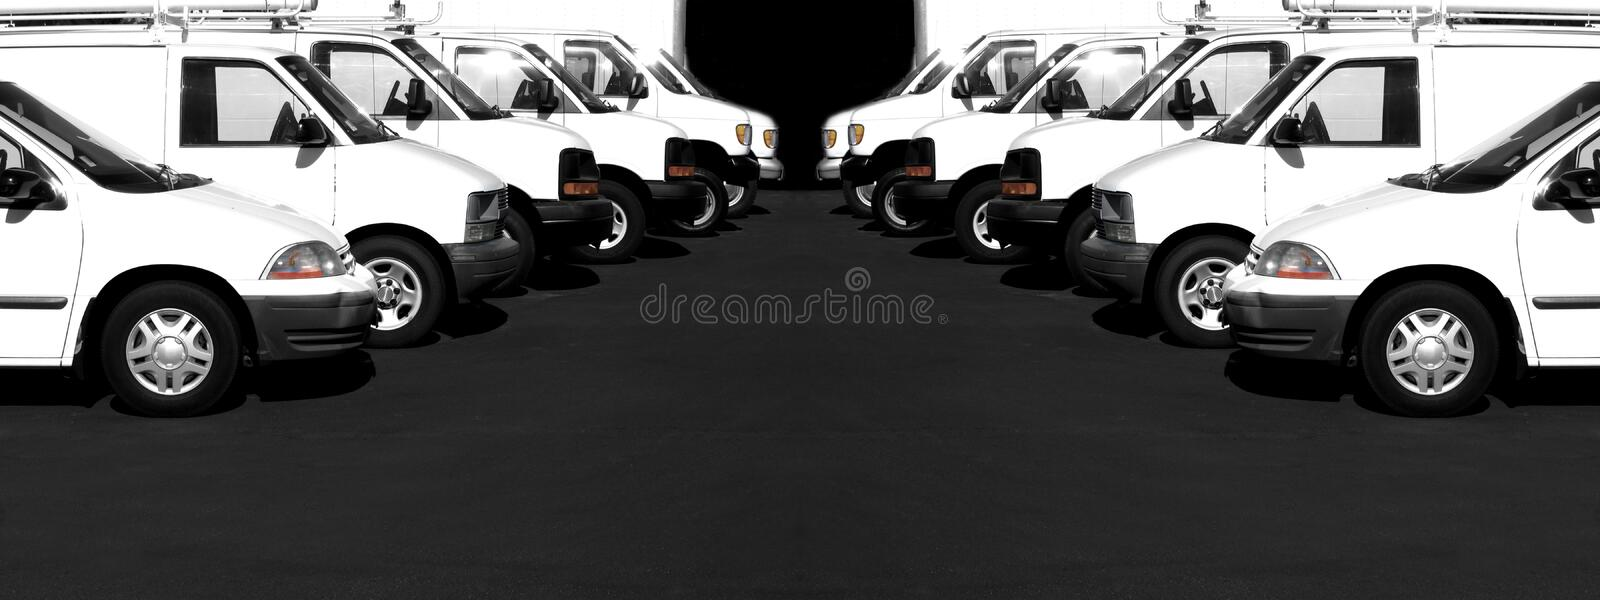 White Cars and Vans in a Row Parking Lot royalty free stock images